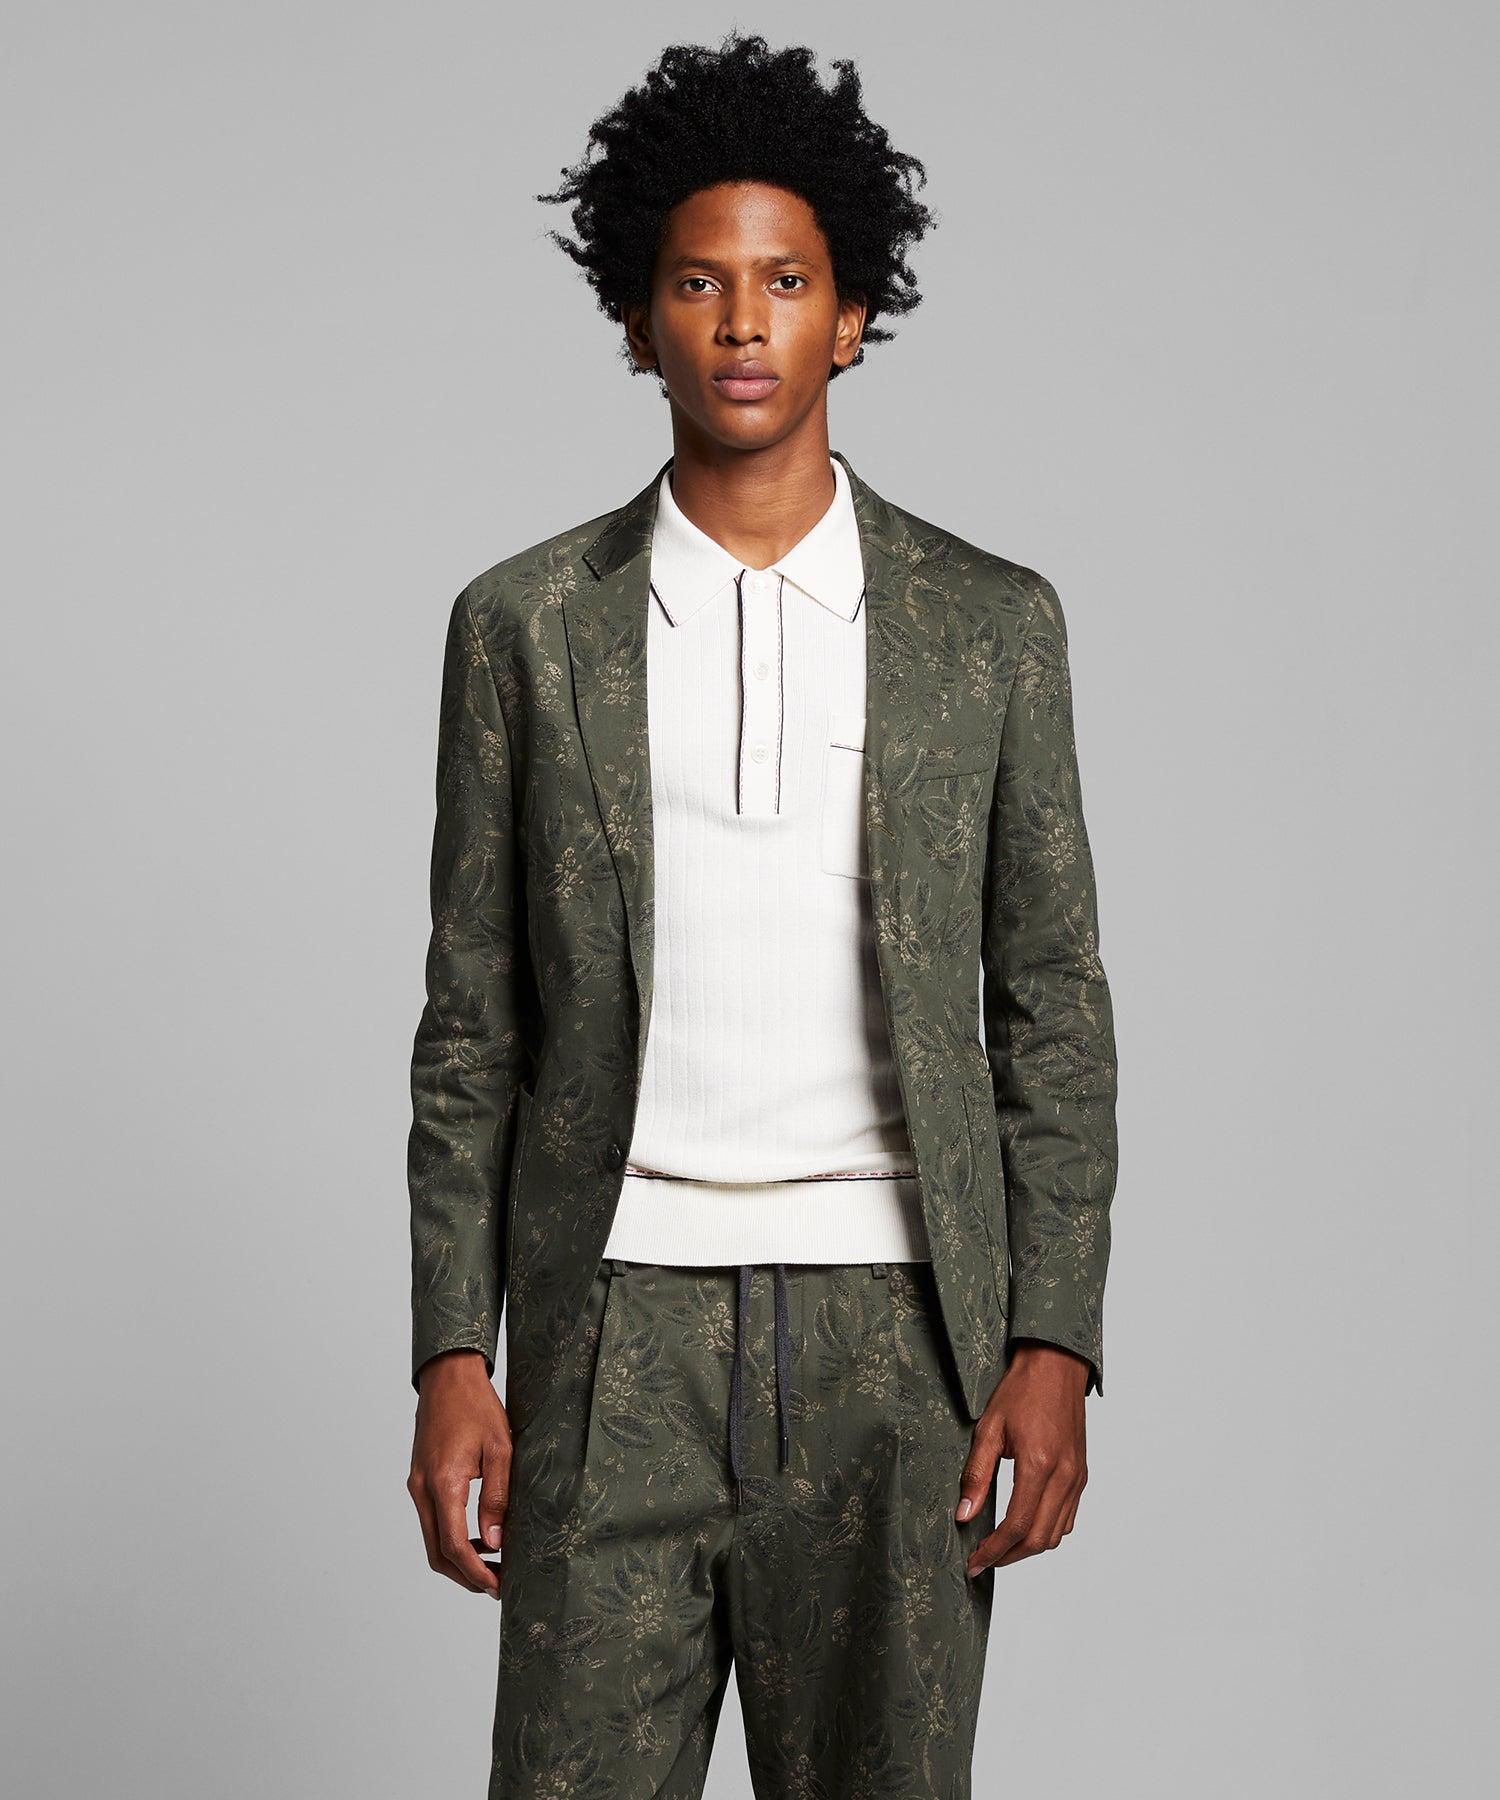 Italian Floral Traveler Suit Jacket in Olive